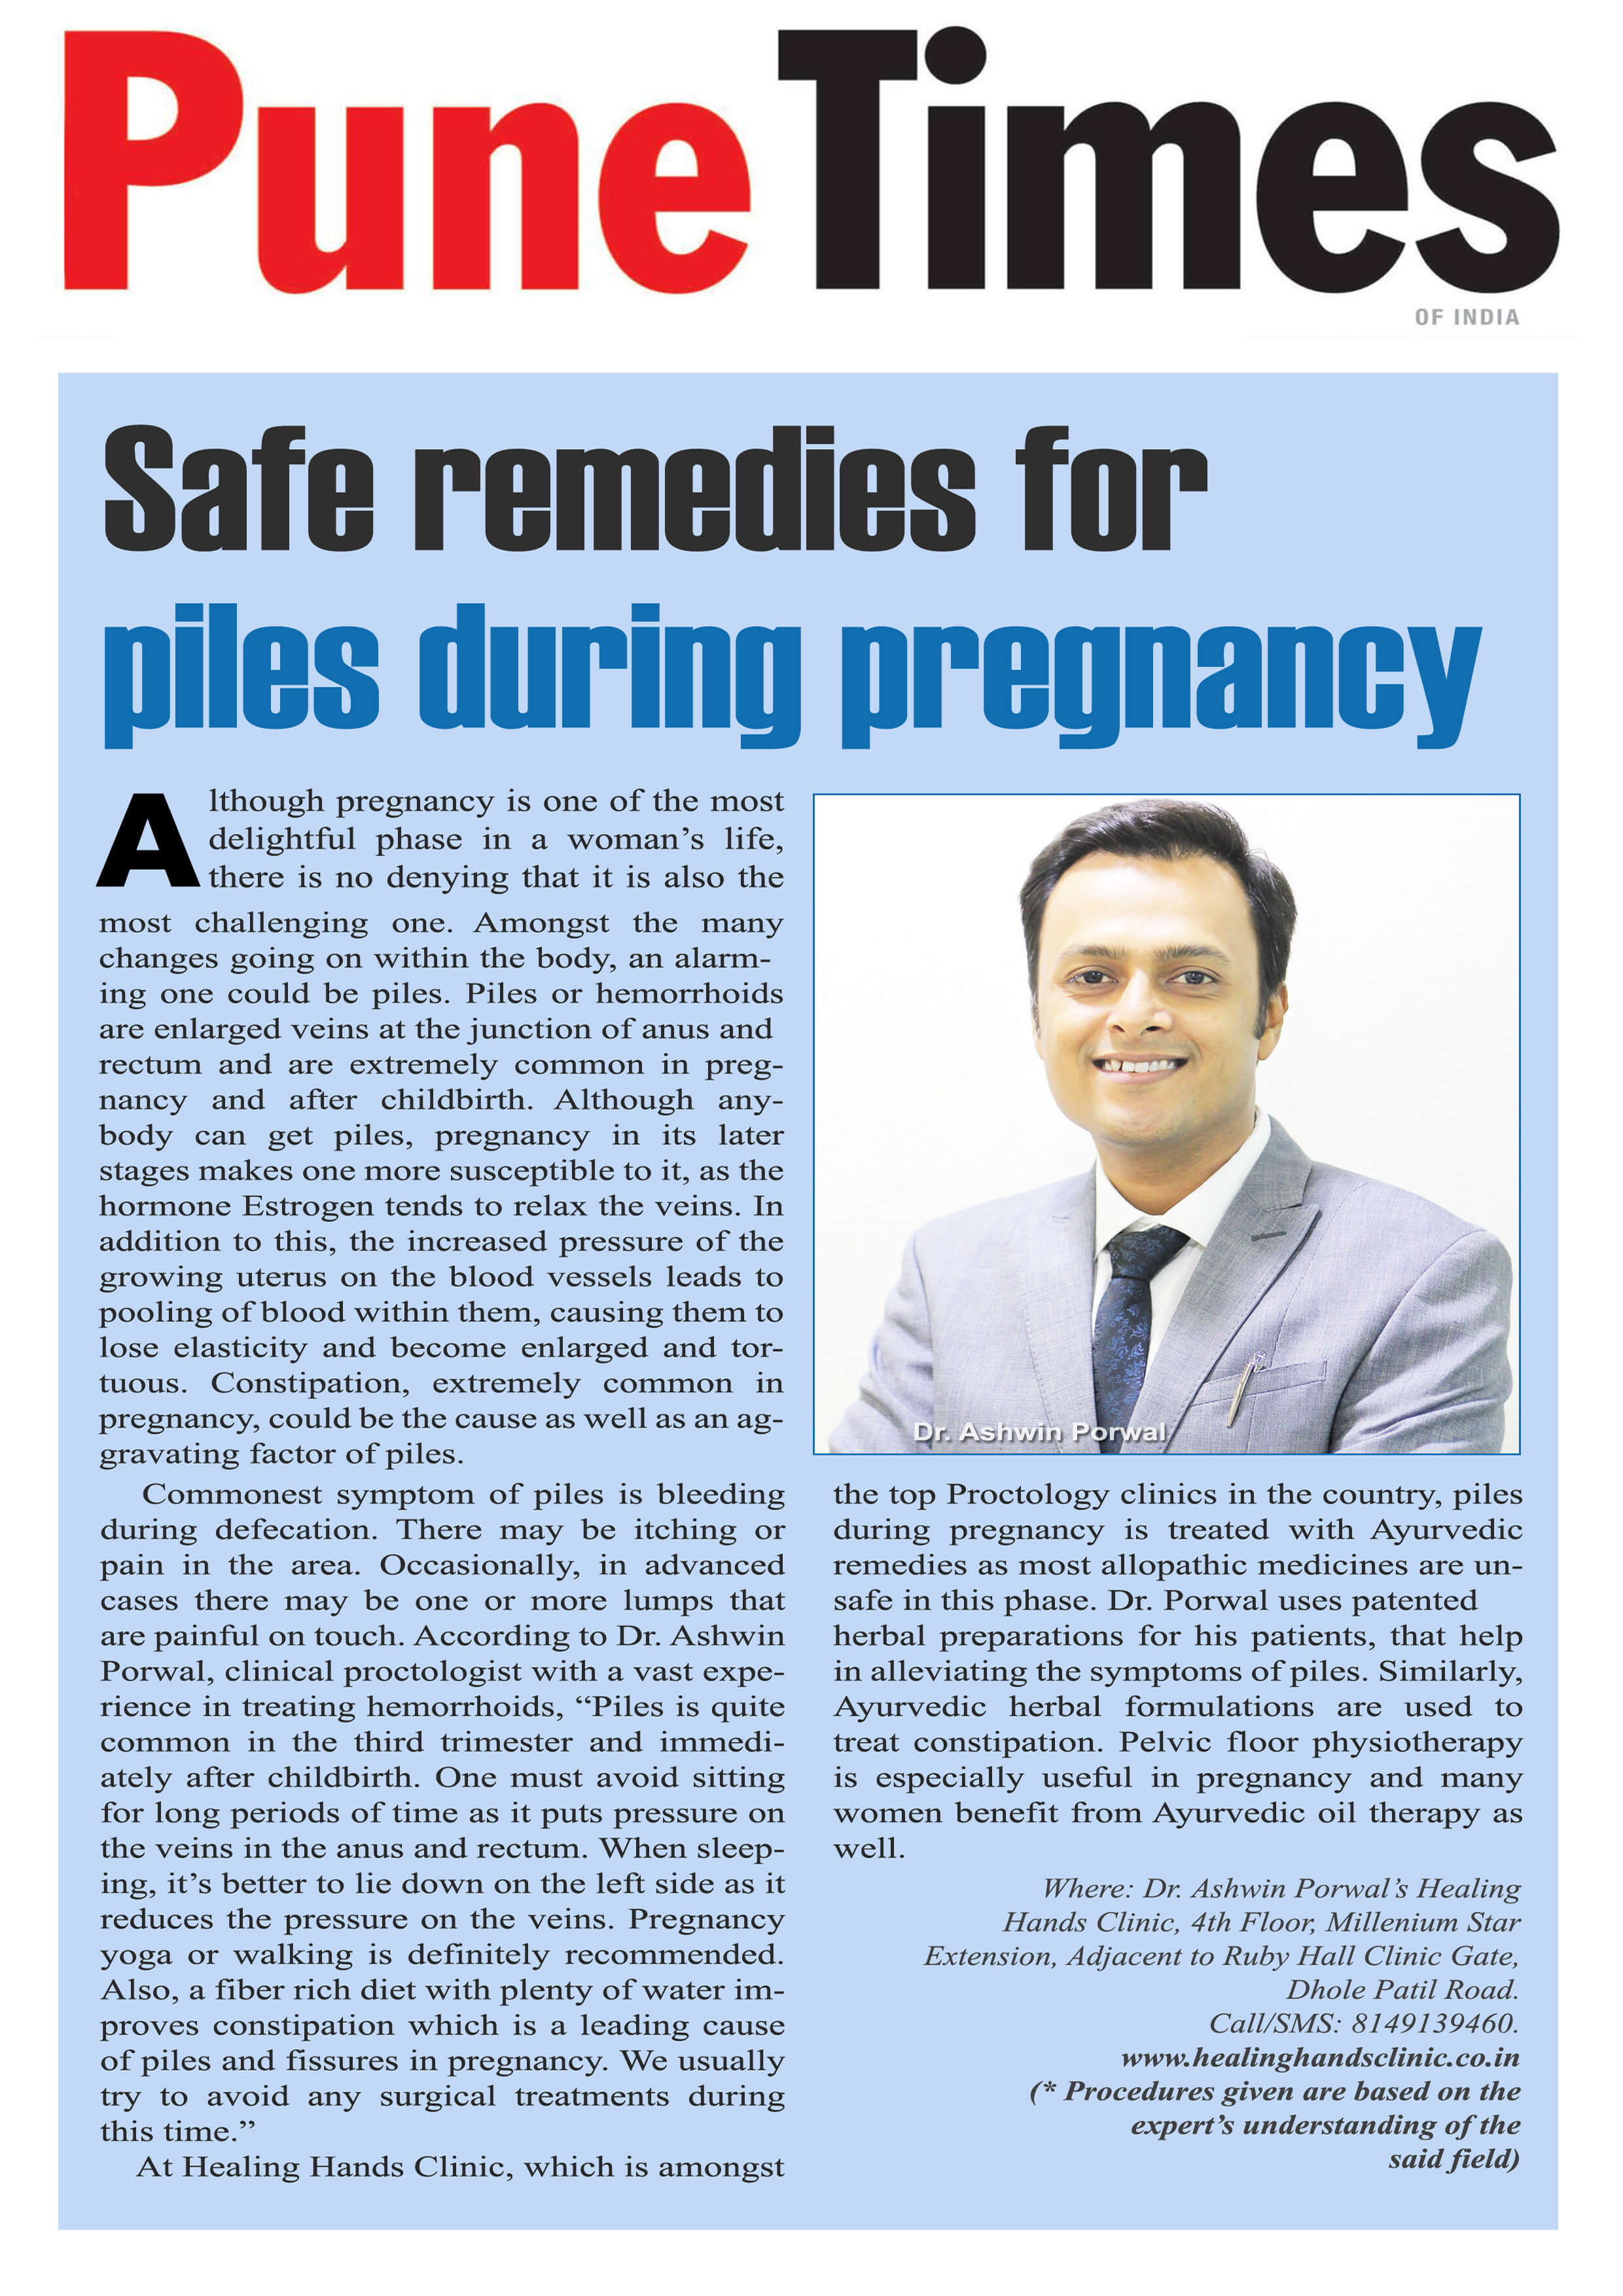 Safe remedies for piles during pregnancy